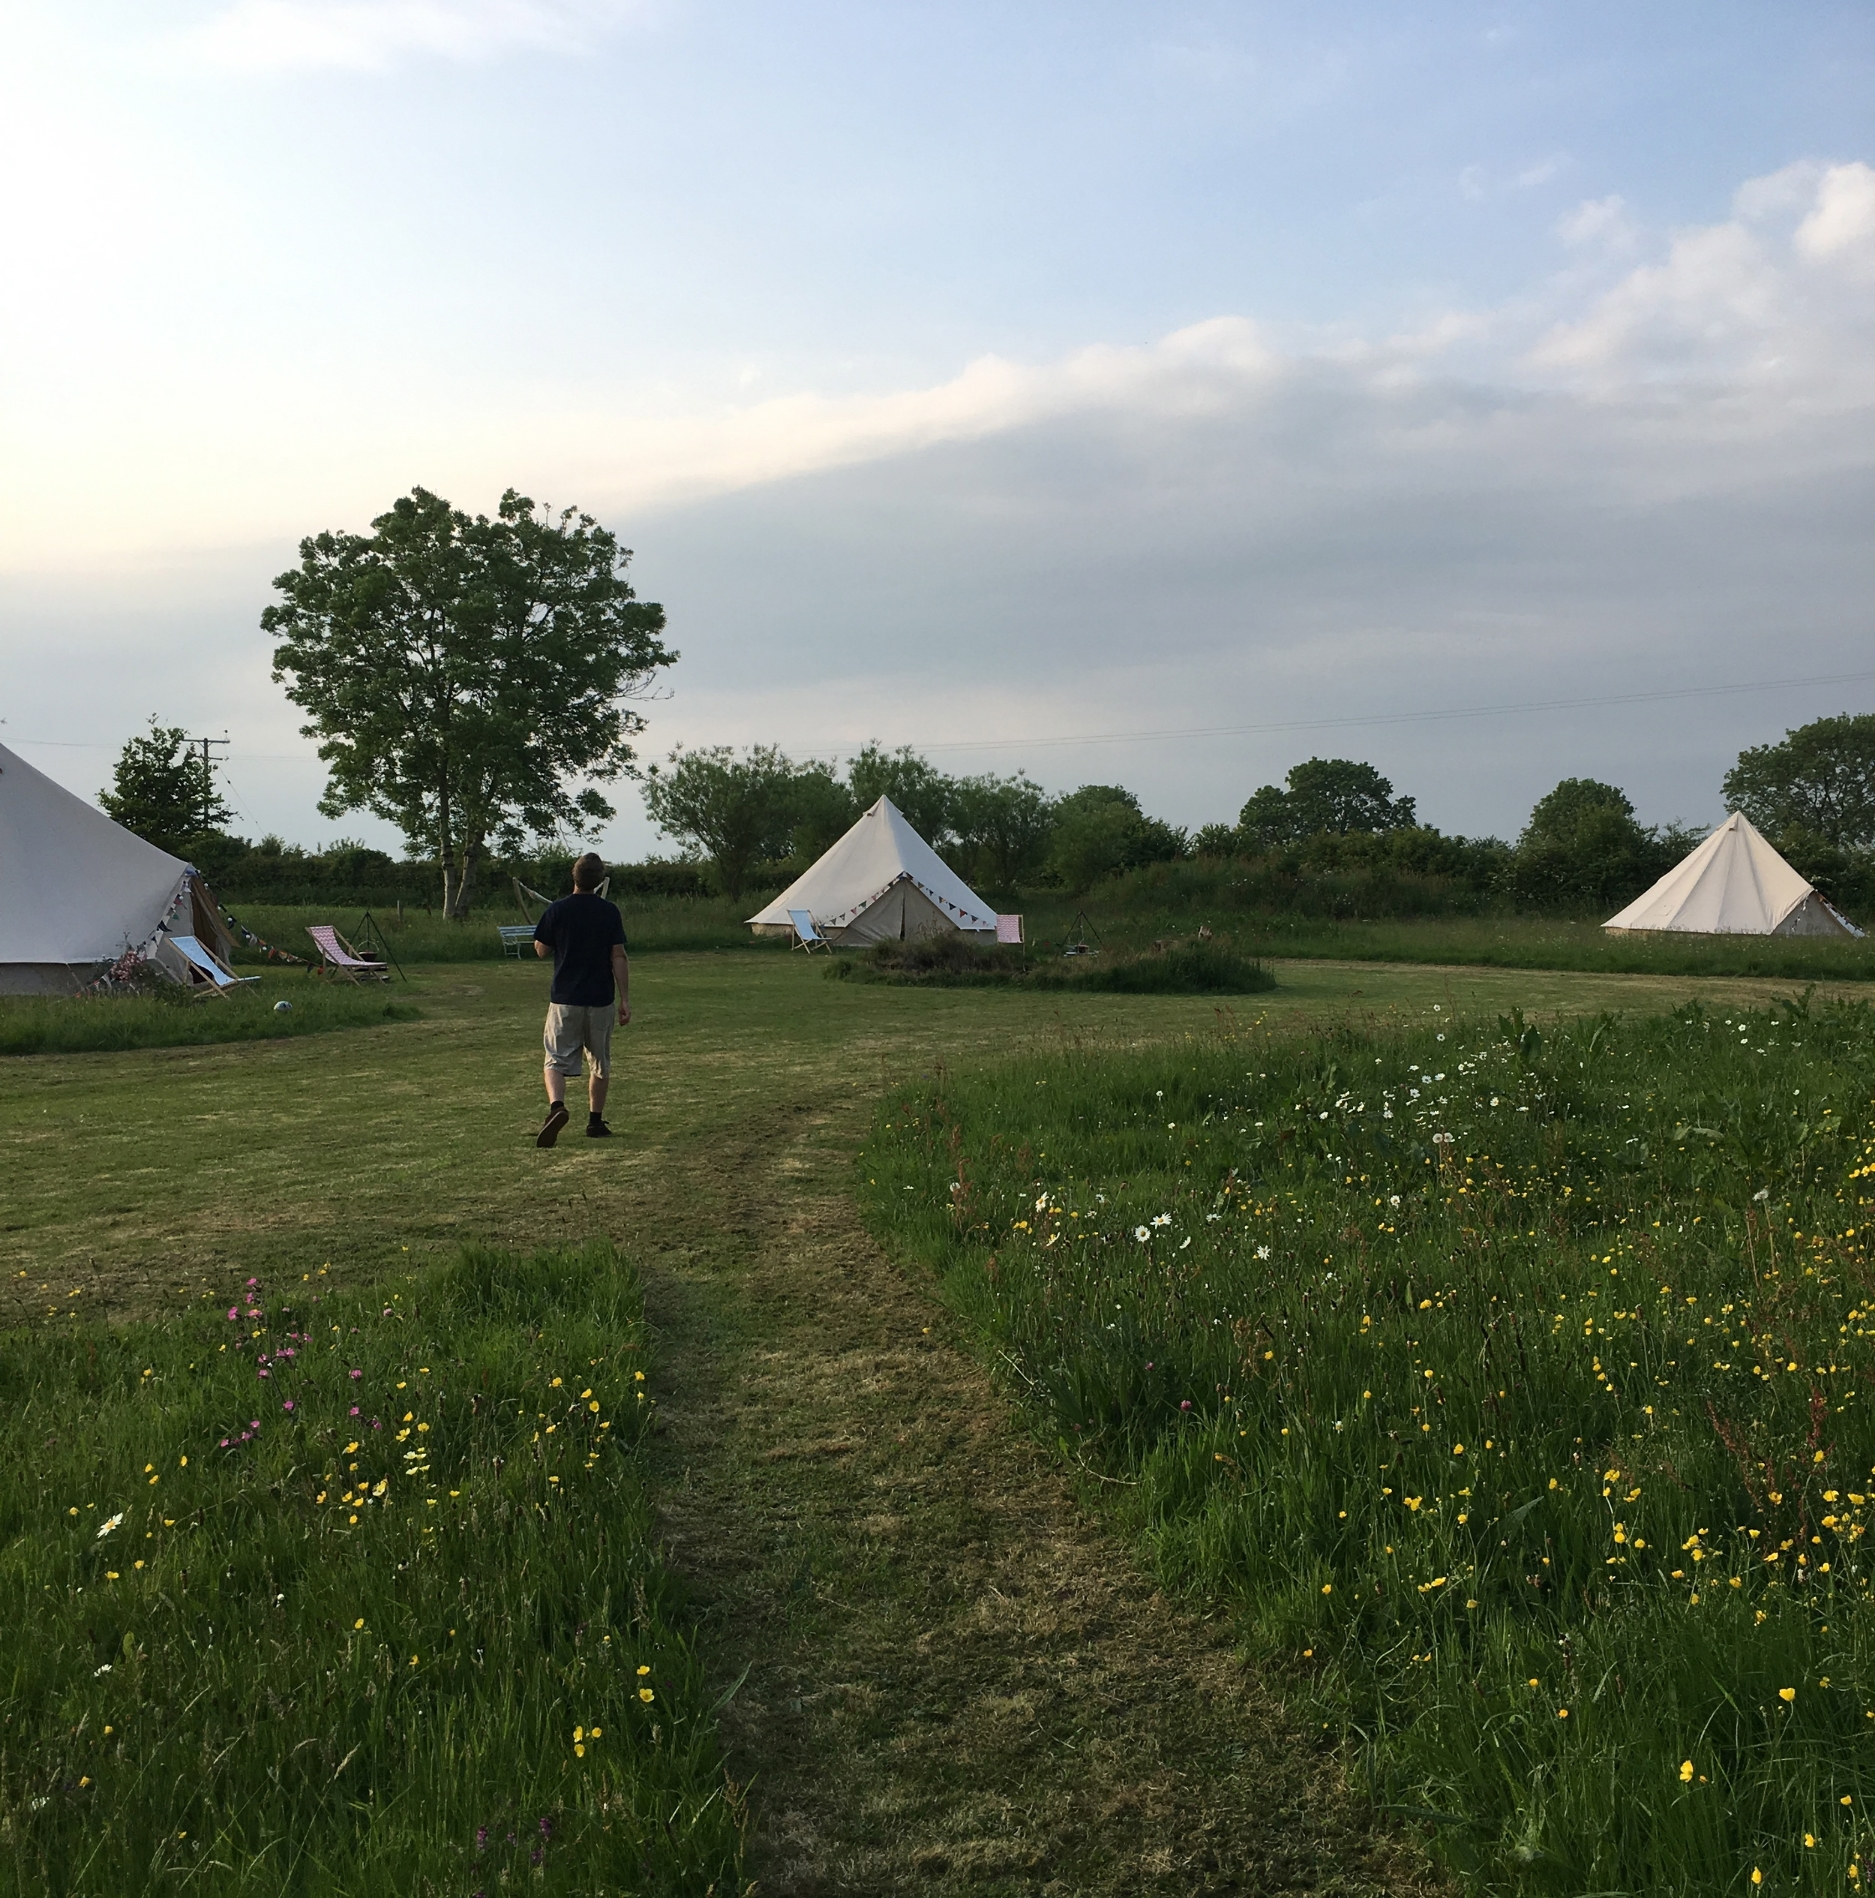 Our glamping site